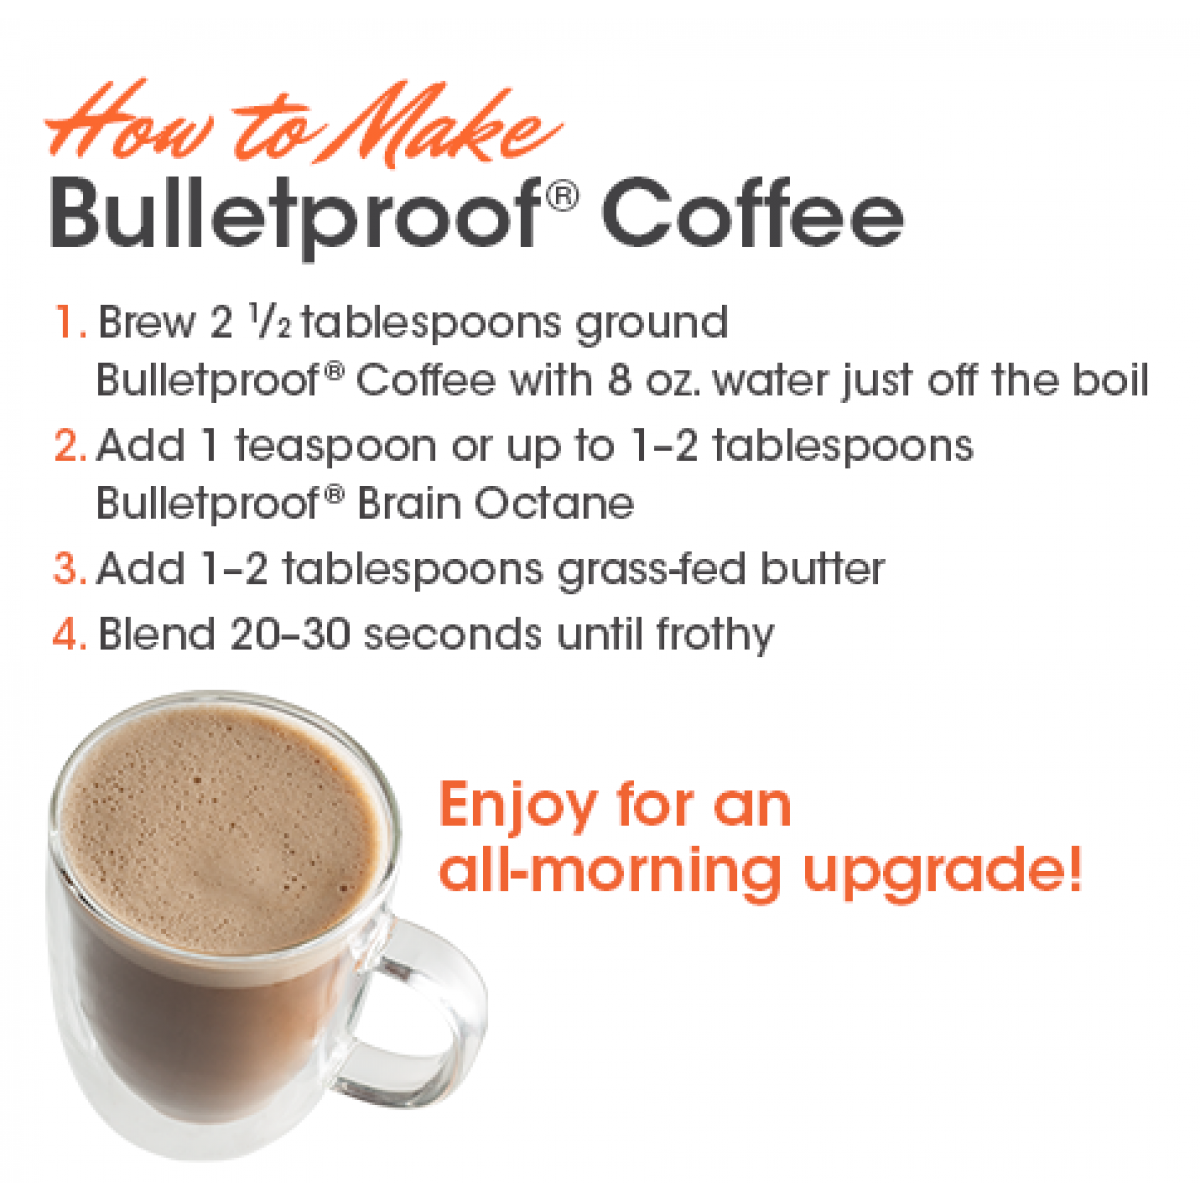 Ketogenic Diet And Bulletproof Coffee | All Articles about Ketogenic Diet